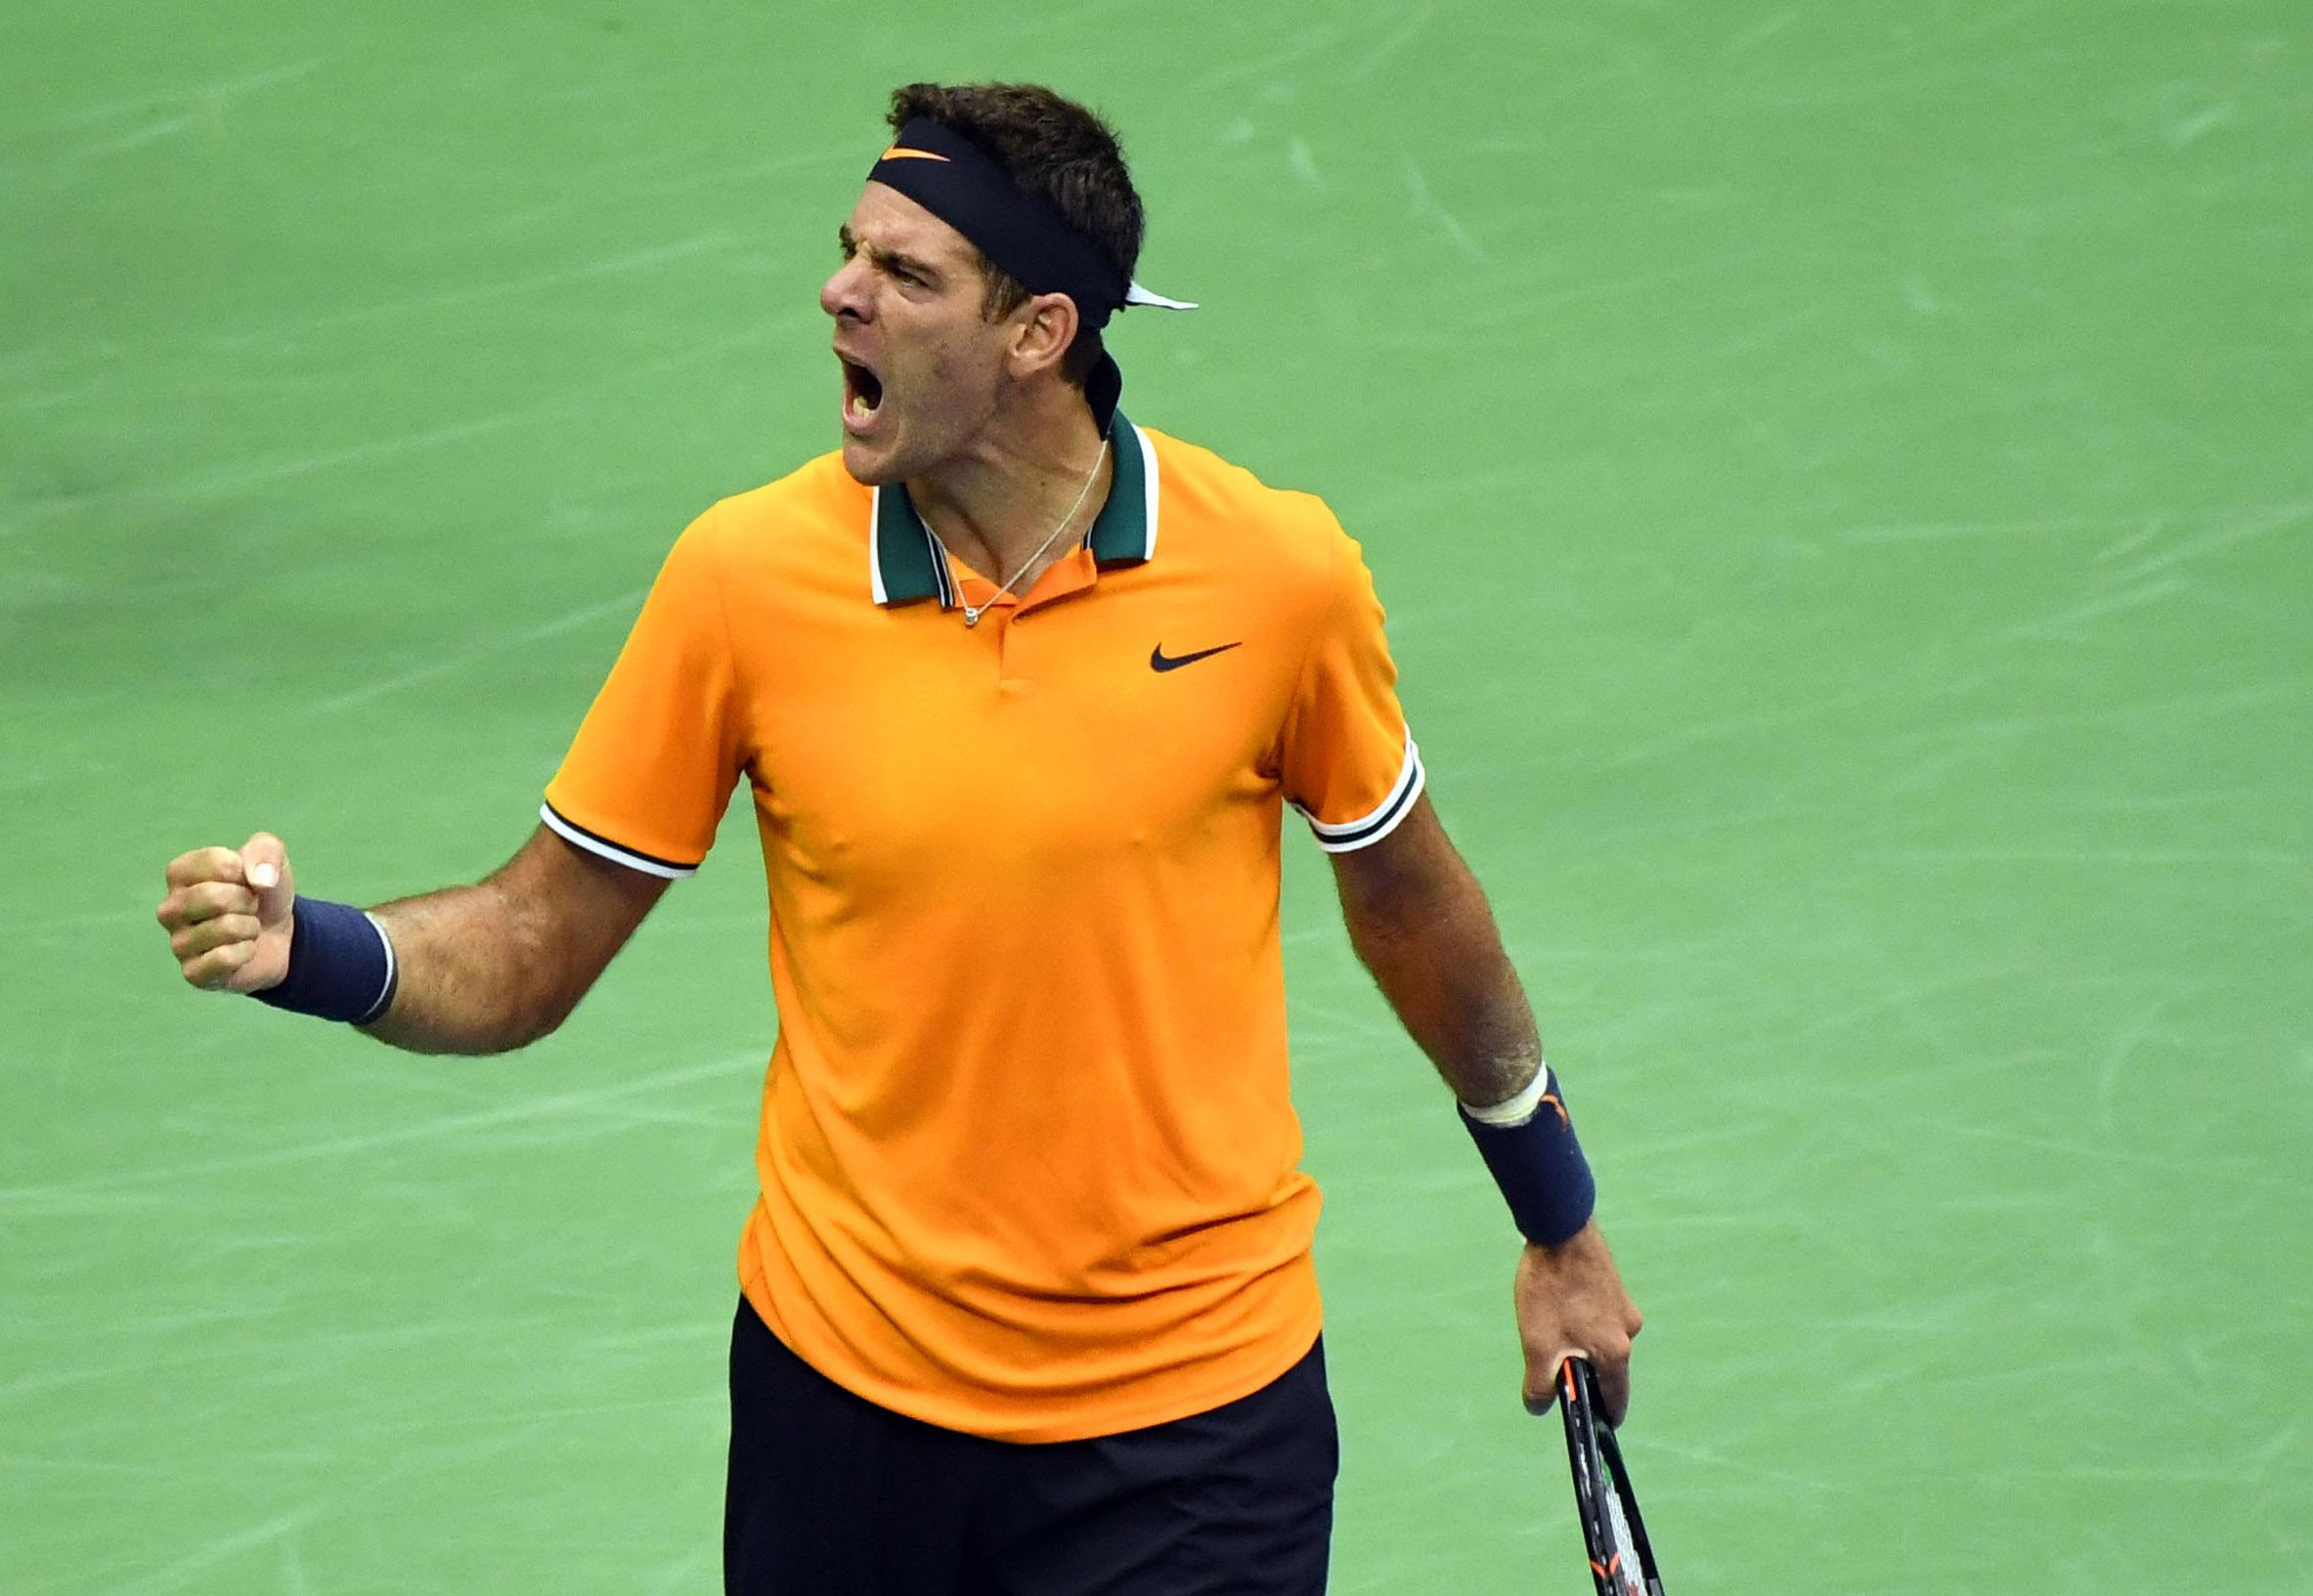 Del Potro went 2-0 up in sets and there was virtually no way back for Nadal